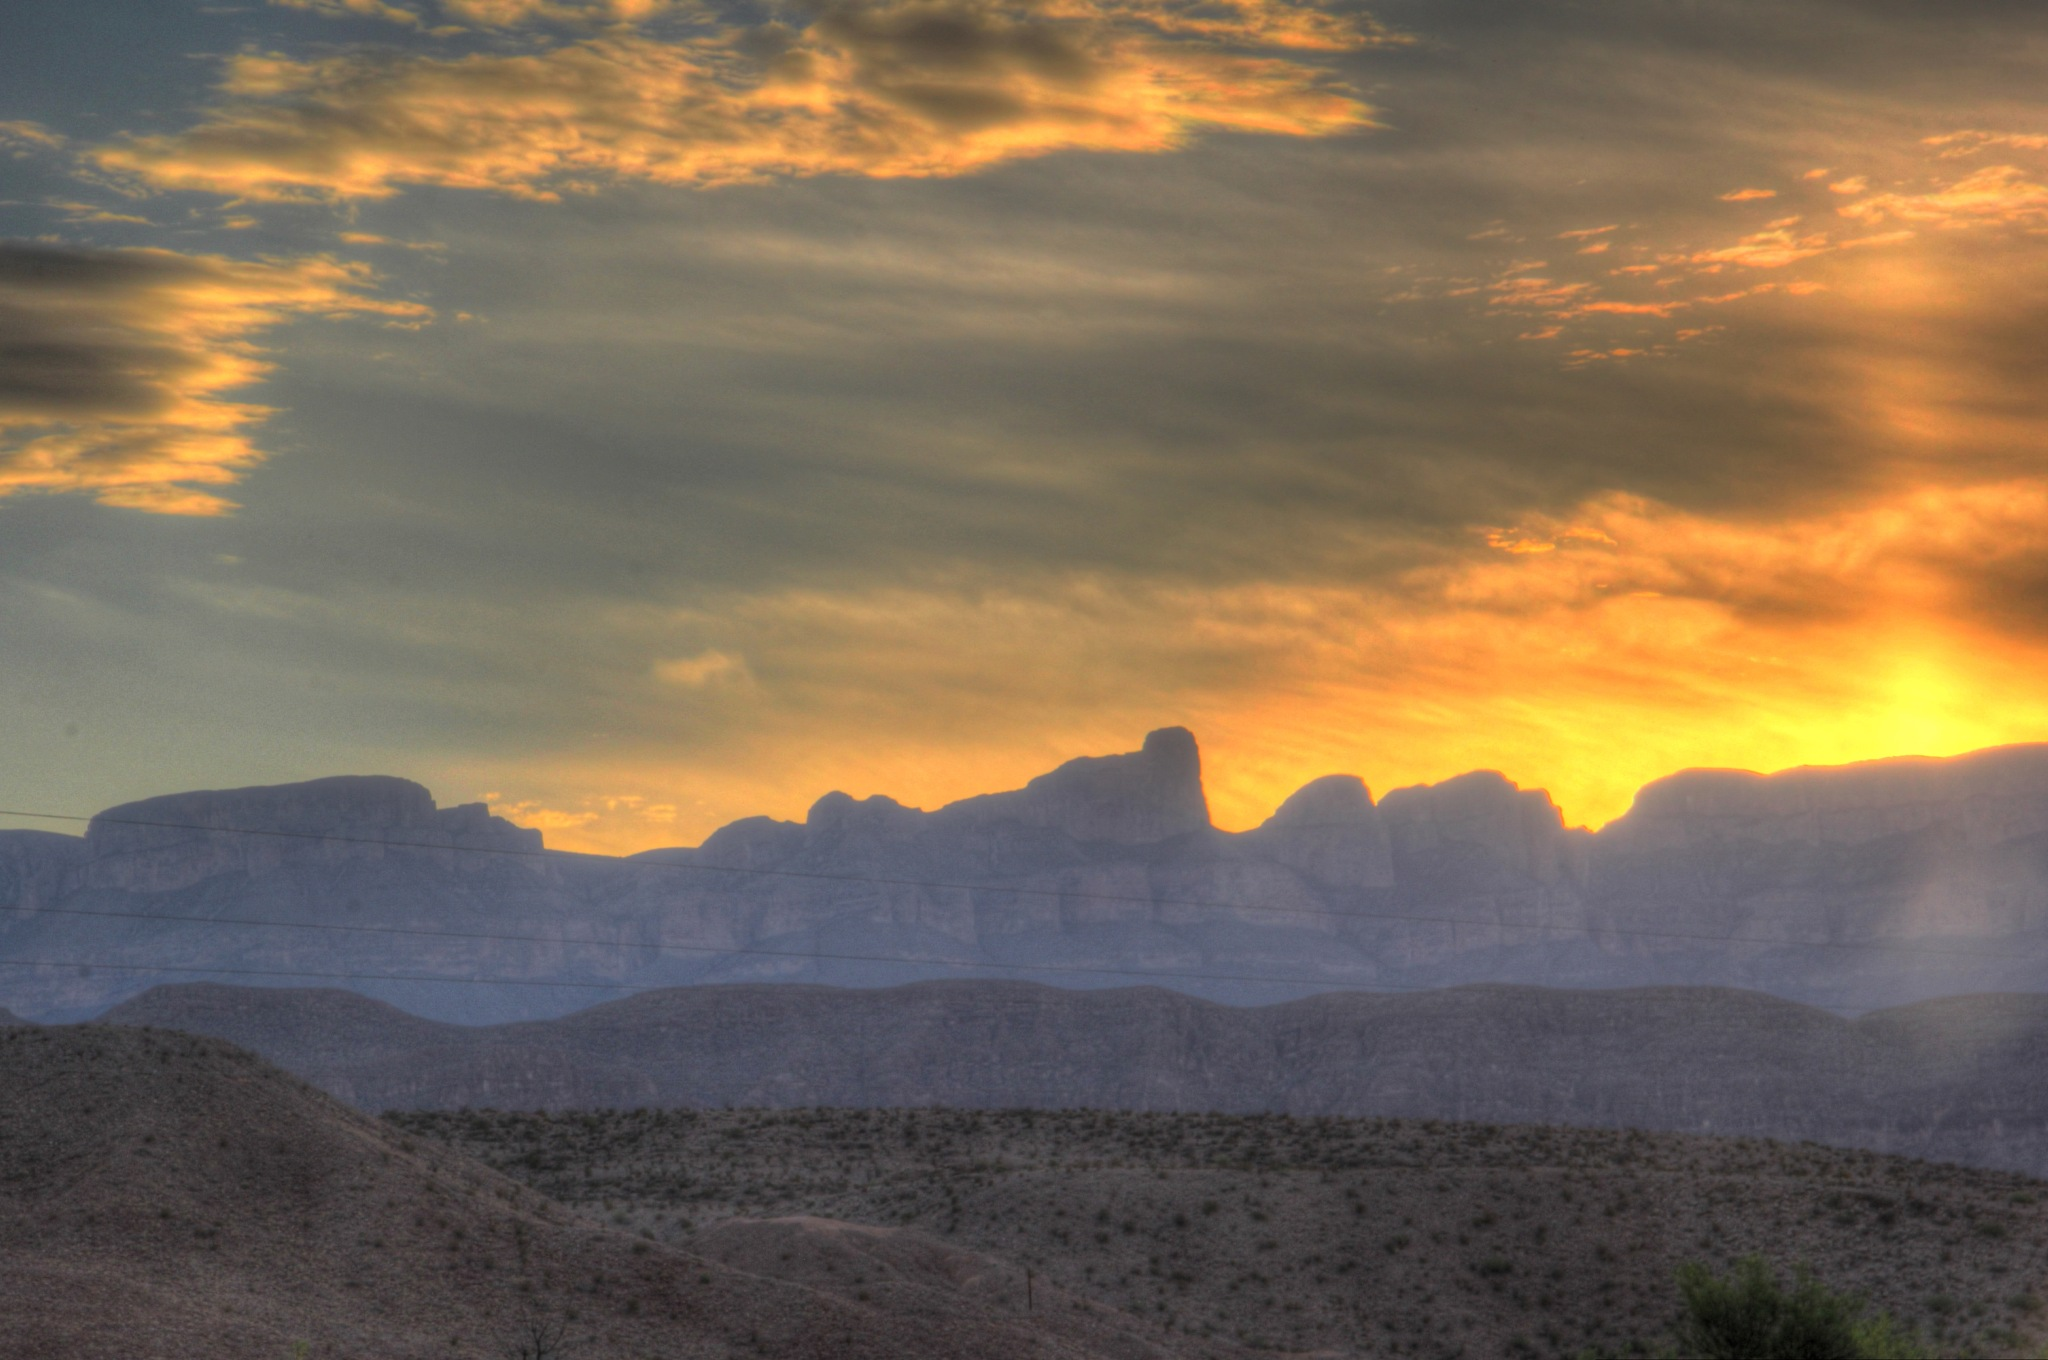 Sunrise at Big Bend National Park by kstand